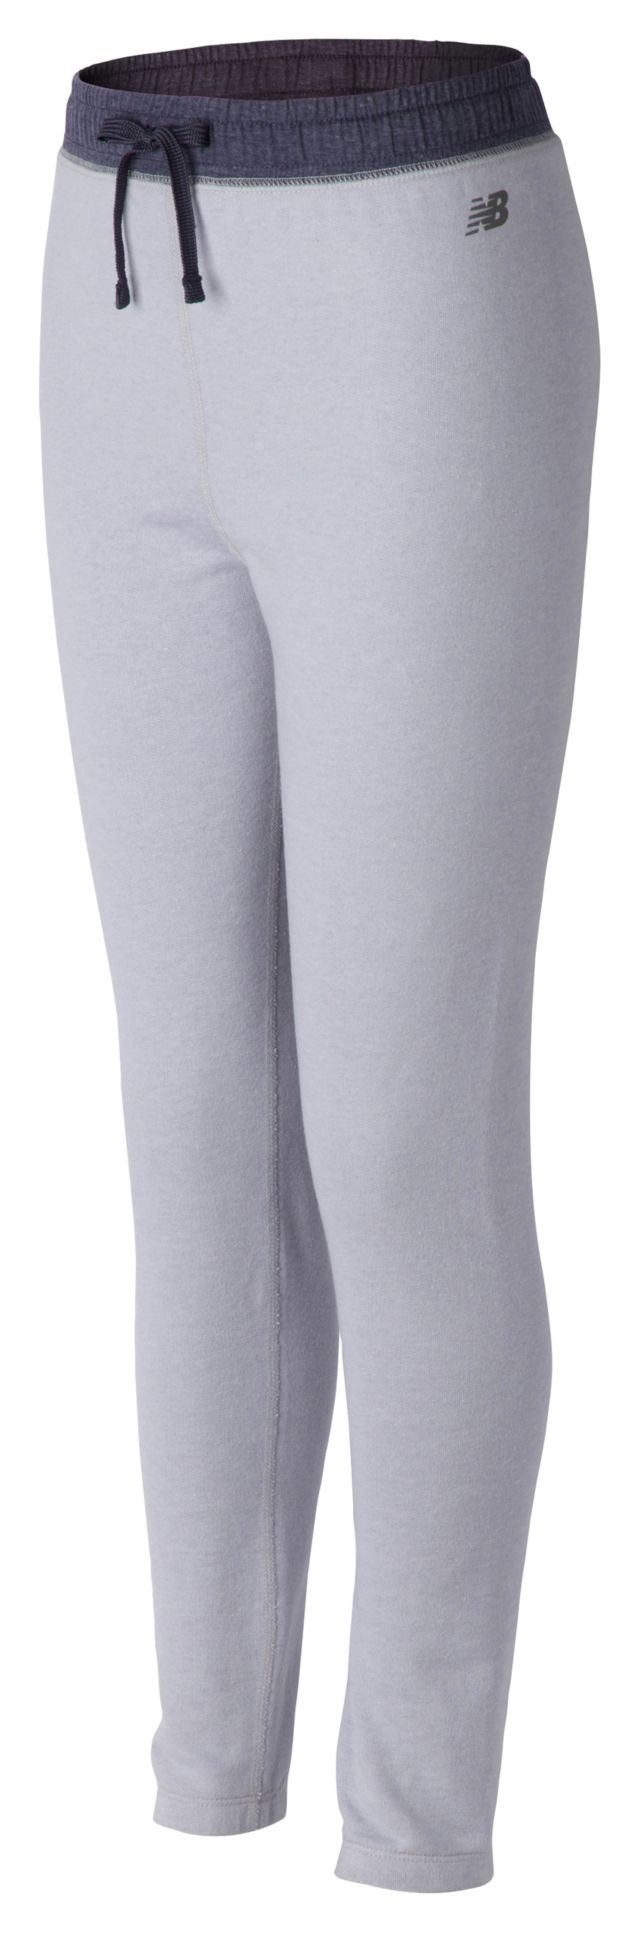 Girl's Athleisure Pant